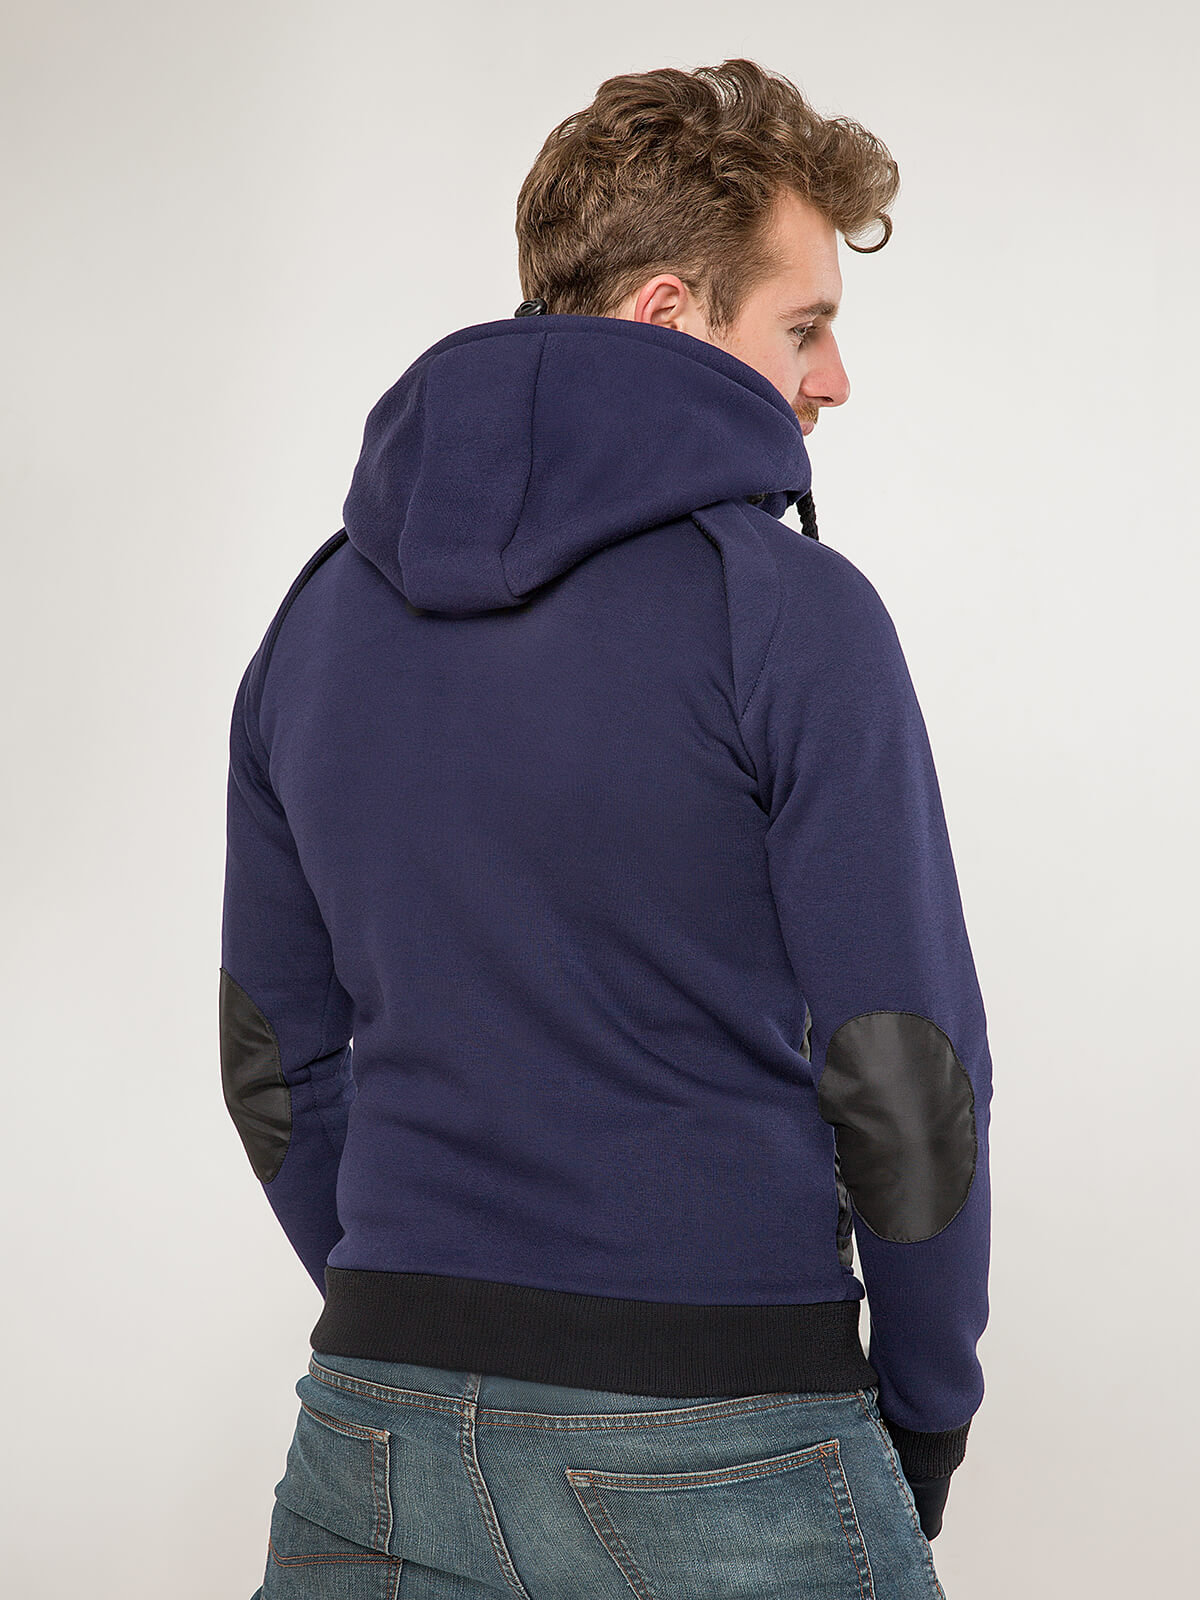 Men's Hoodie Syla. Color navy blue.  Material of the hoodie – three-cord thread fabric: 77% cotton, 23% polyester.